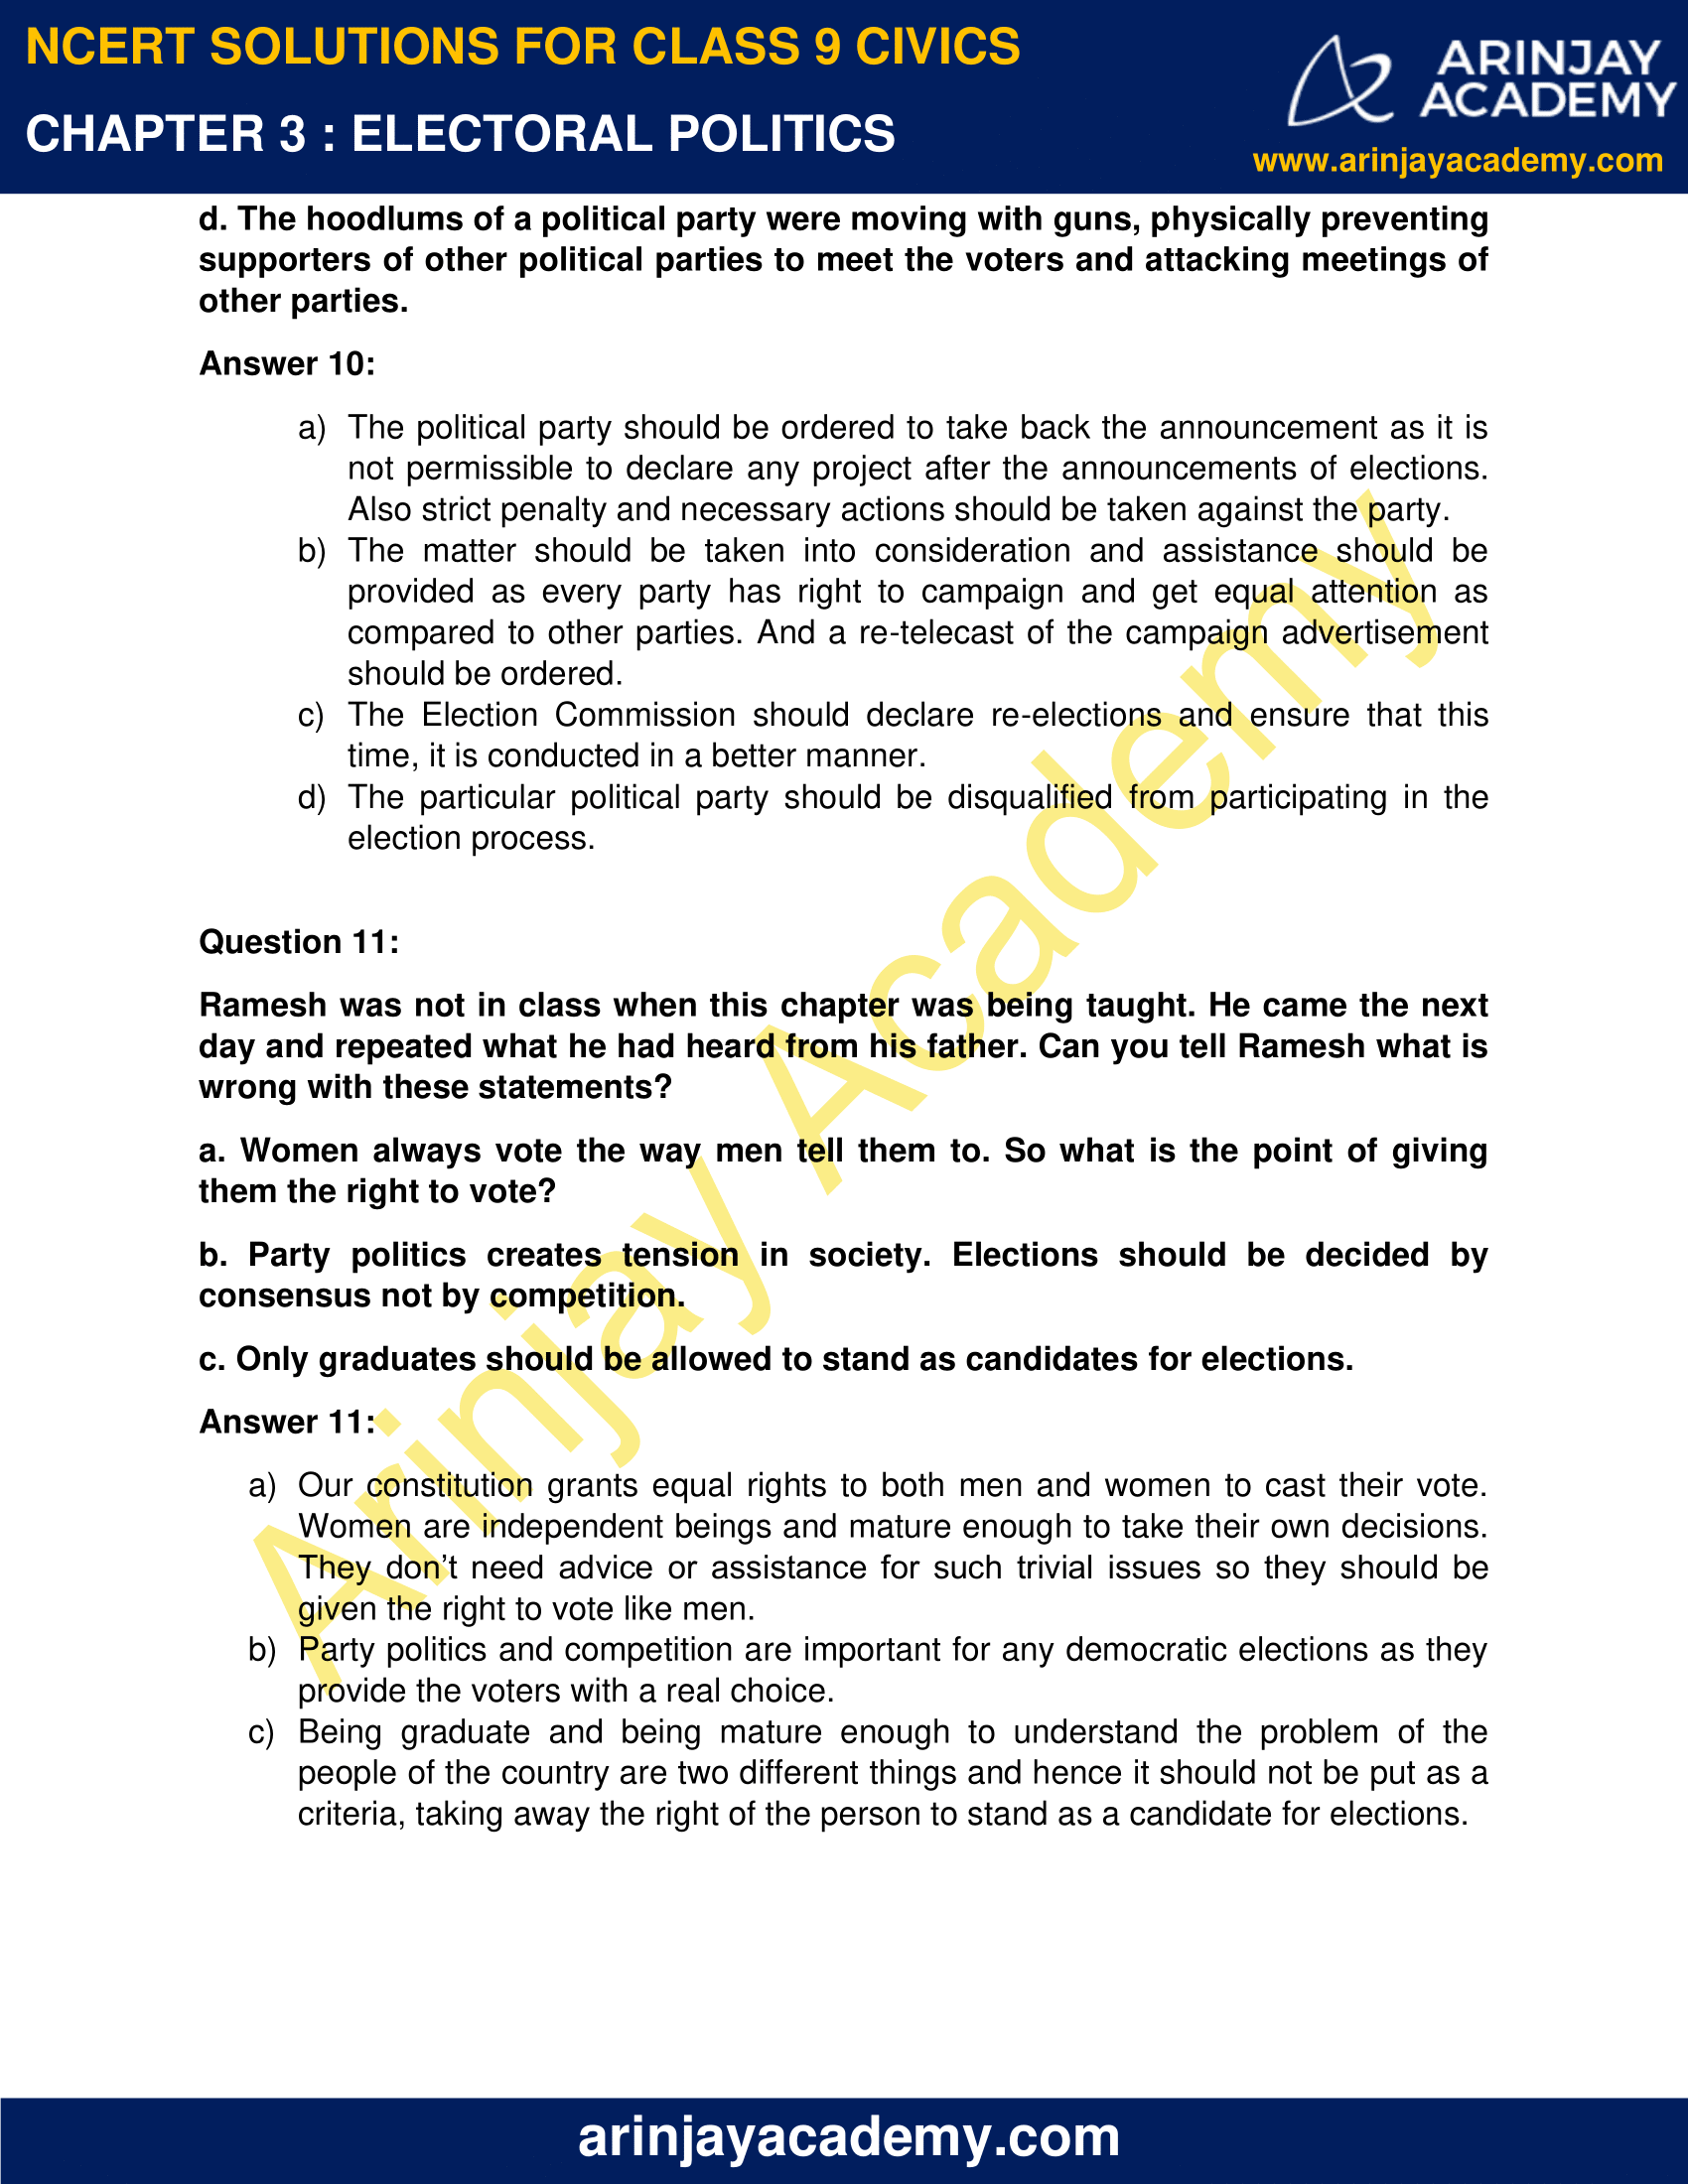 NCERT Solutions for Class 9 Civics Chapter 3 - Electoral Politics image 7